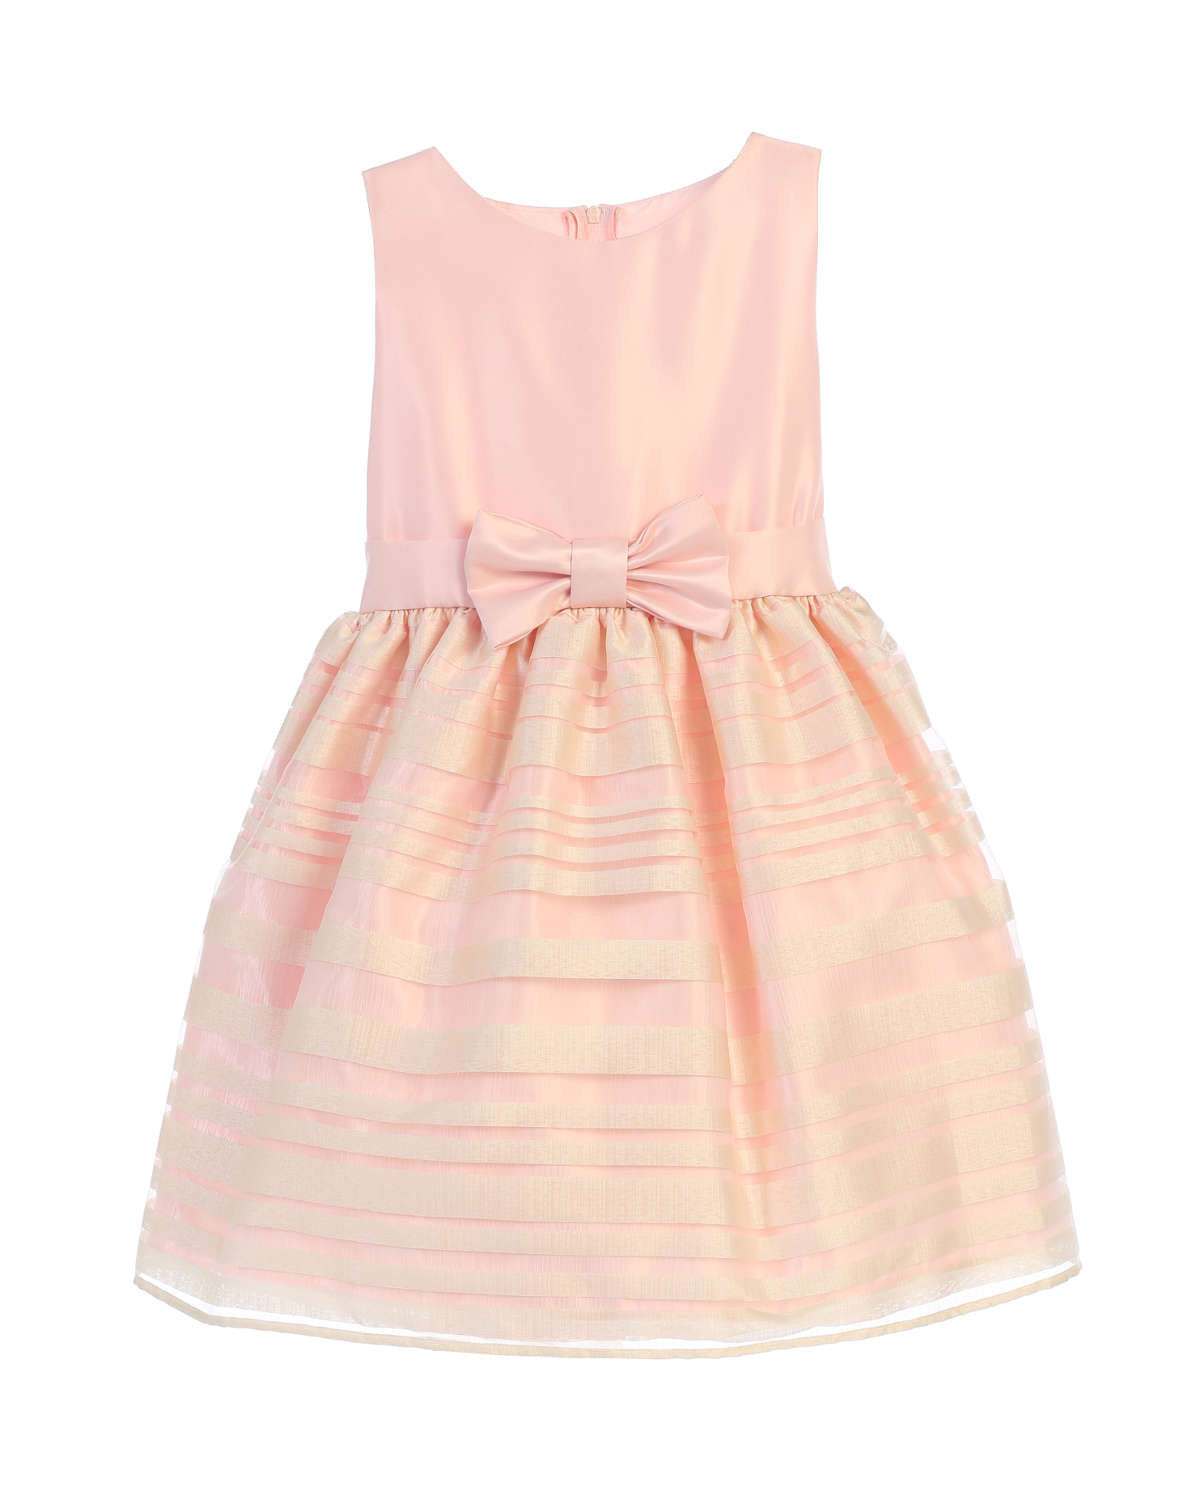 Sweet kids satin and striped organza skirt dress petal pink sk677